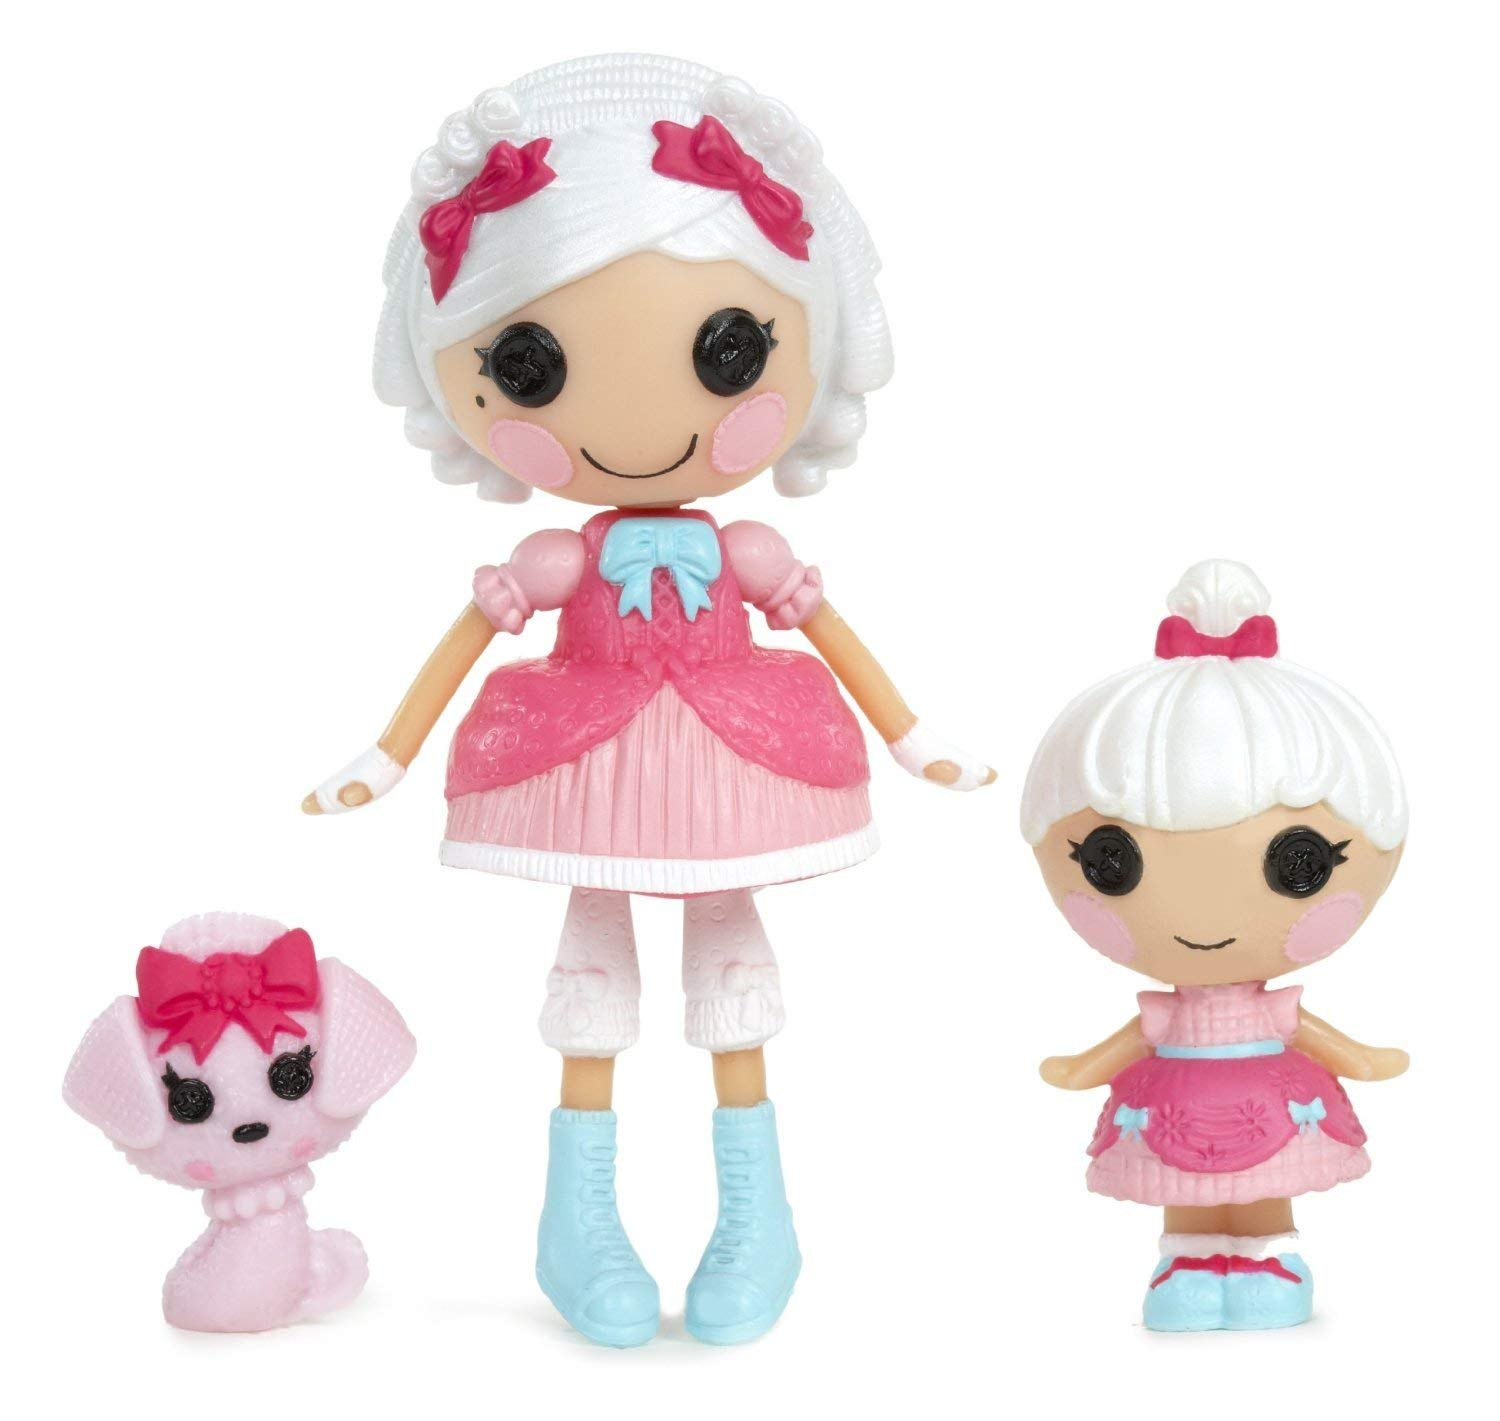 ララループシー 人形 ドール Lalaloopsy Mini Littles Suzette La Sweet and Mimi La Sweet Dollララループシー 人形 ドール